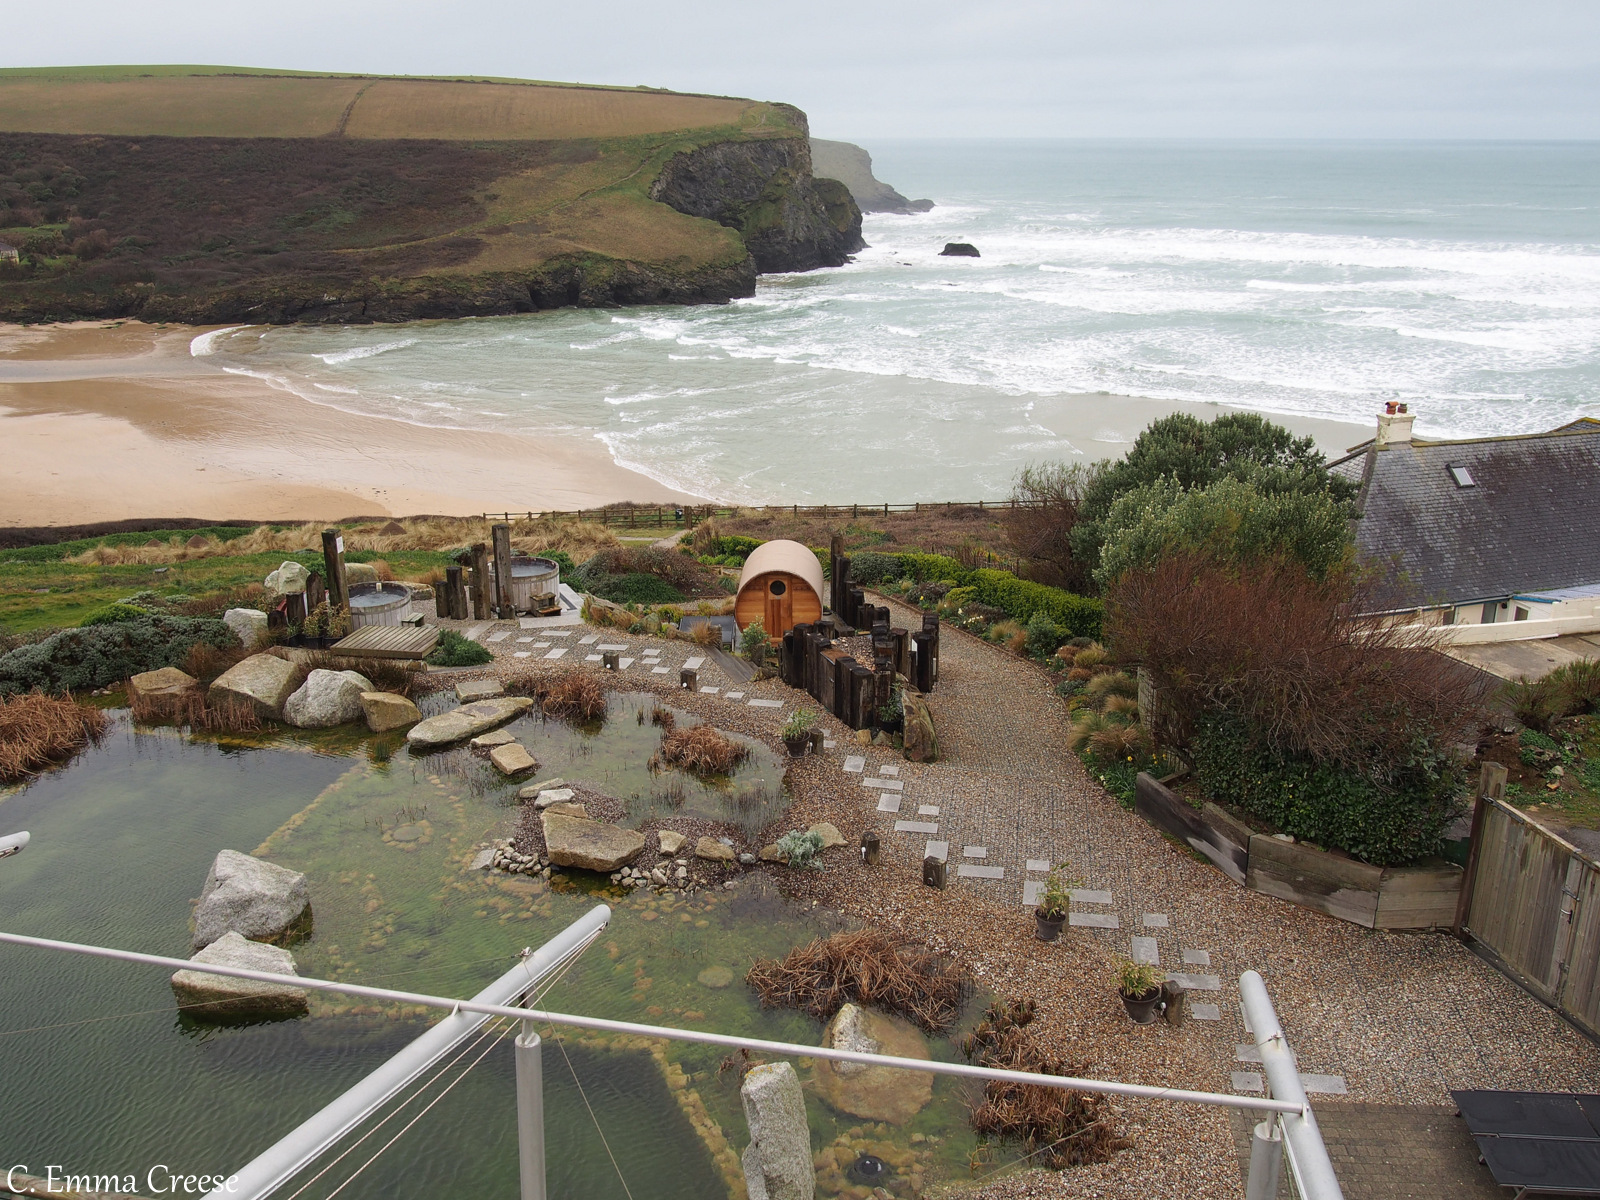 The Scarlet Hotel, Cornwall: A sumptuous seaside spa stay